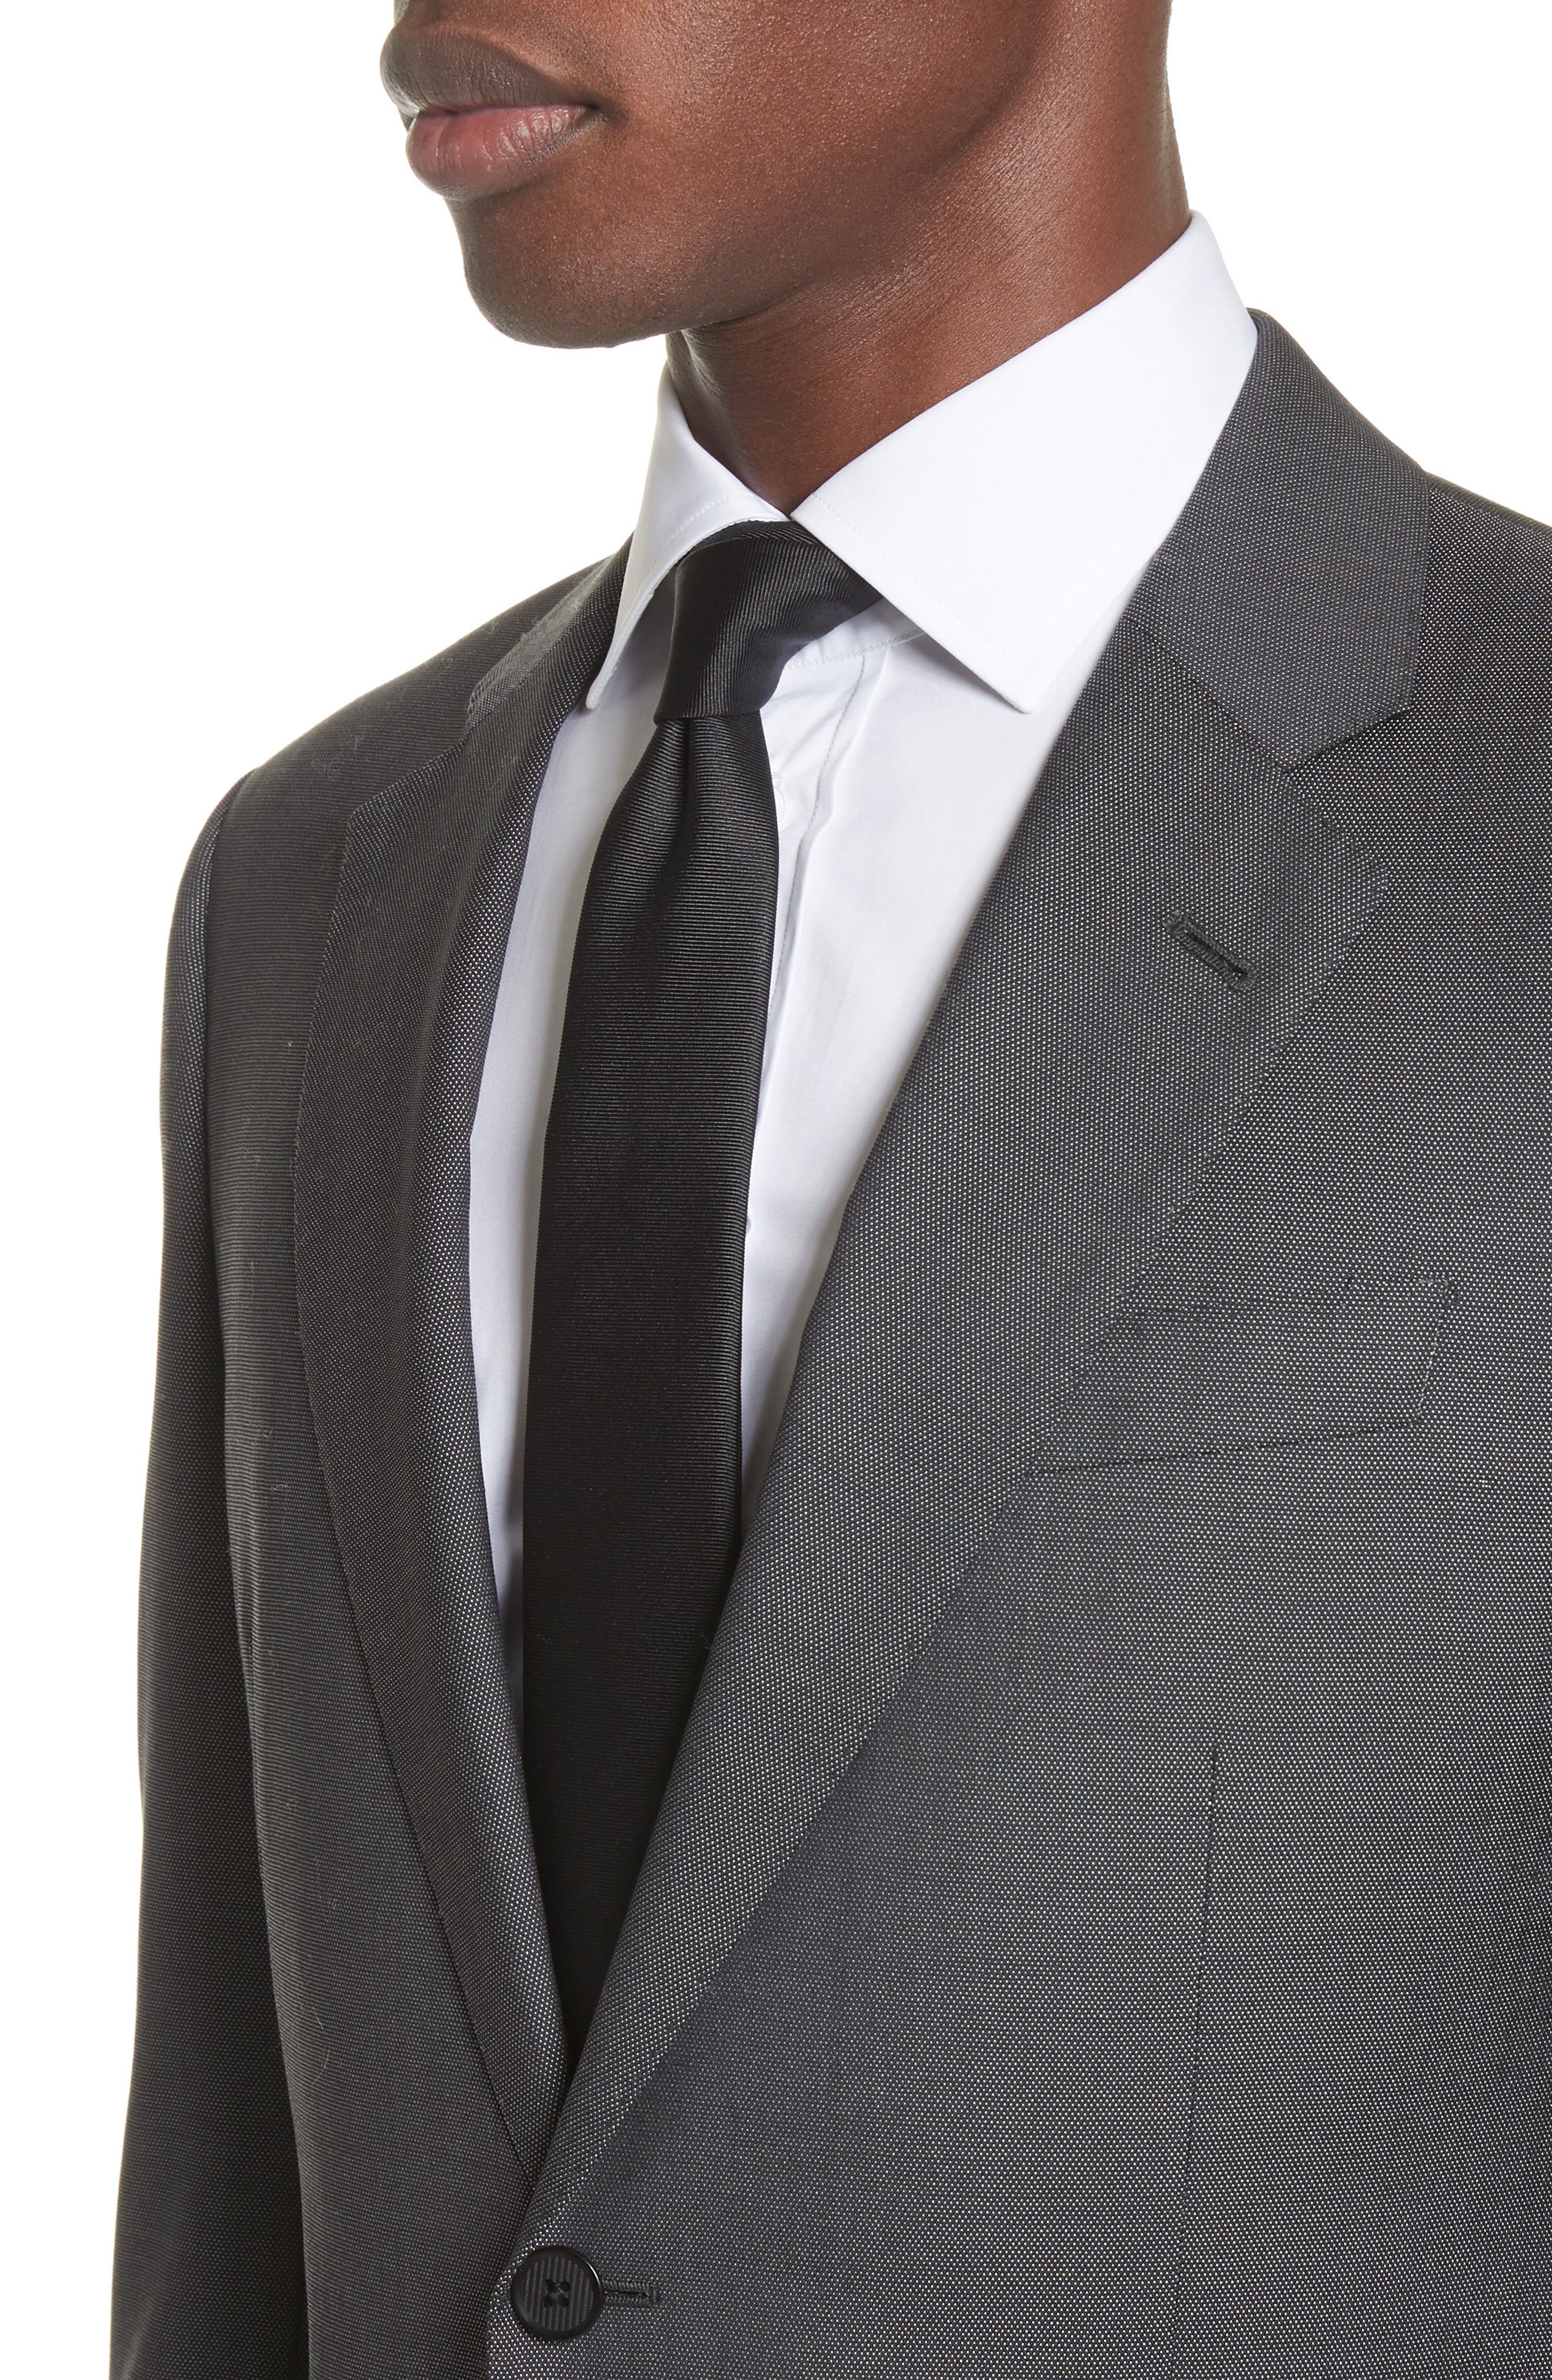 G Line Trim Fit Solid Wool & Silk Suit,                             Alternate thumbnail 4, color,                             Grey